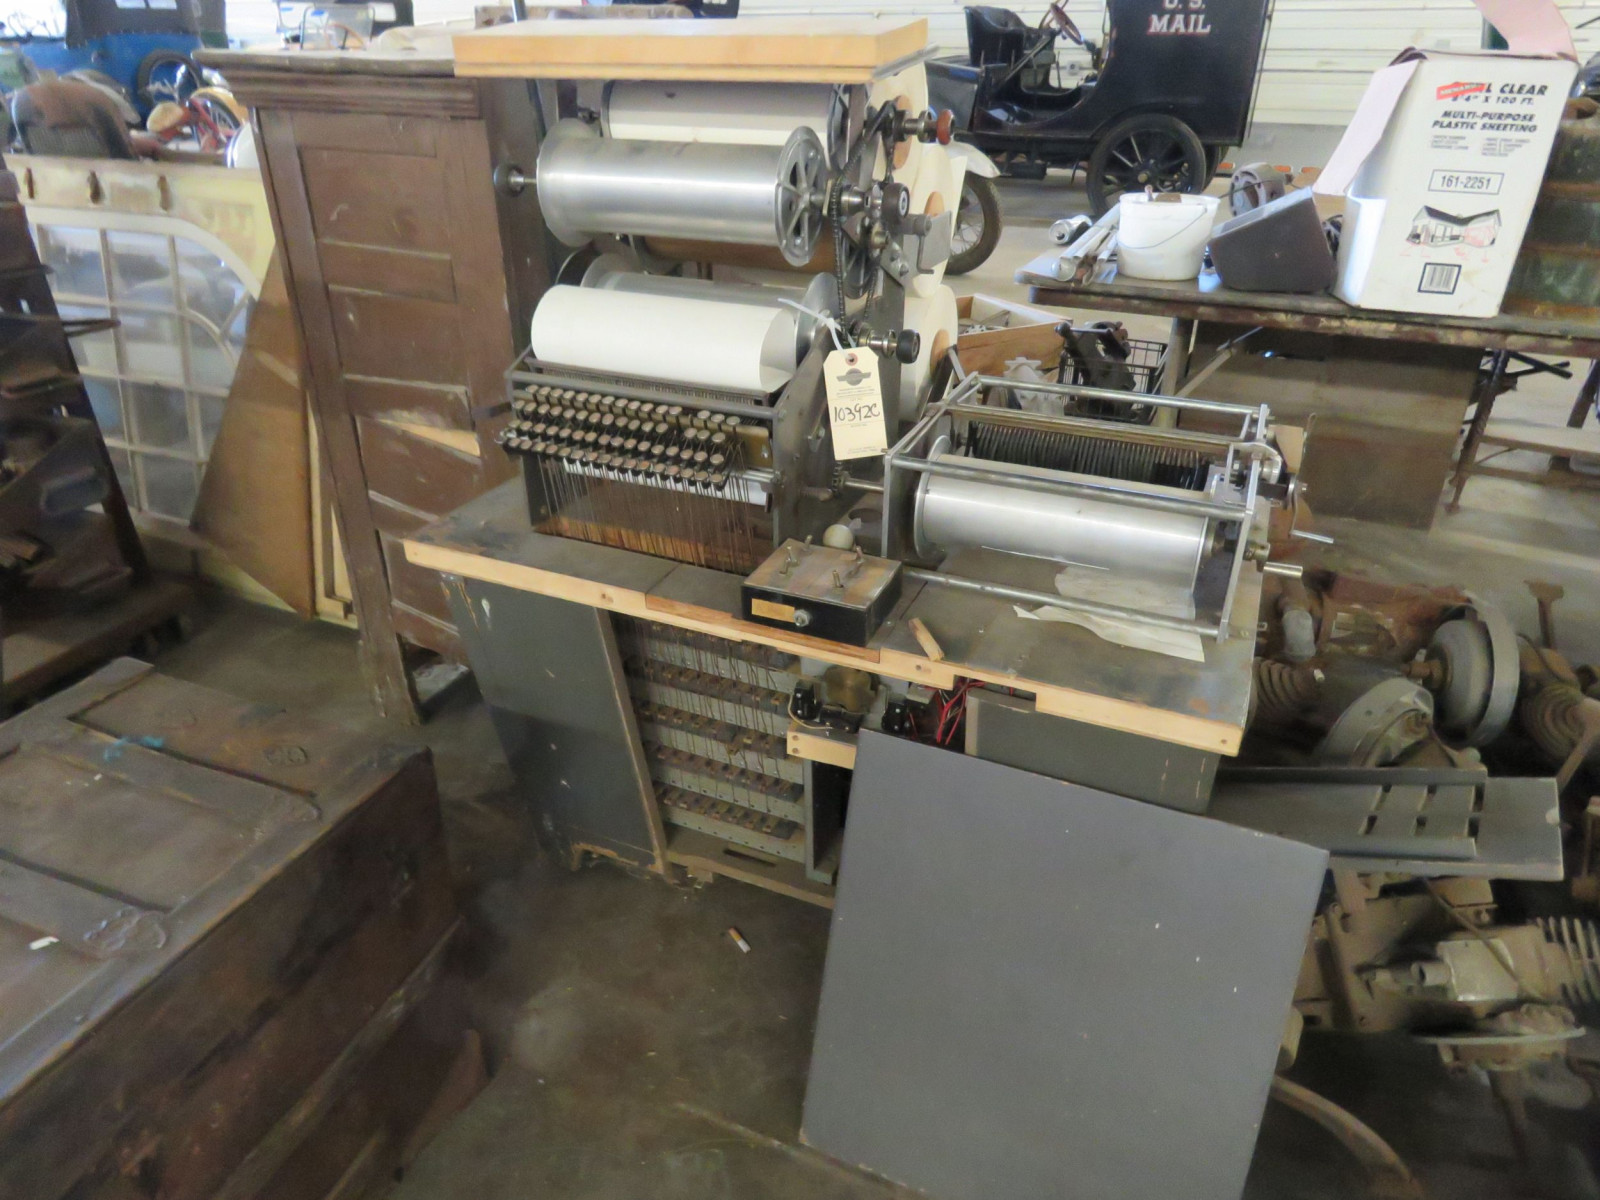 Vintage Roll Perforator Musicla Roll Making Machine - Image 1